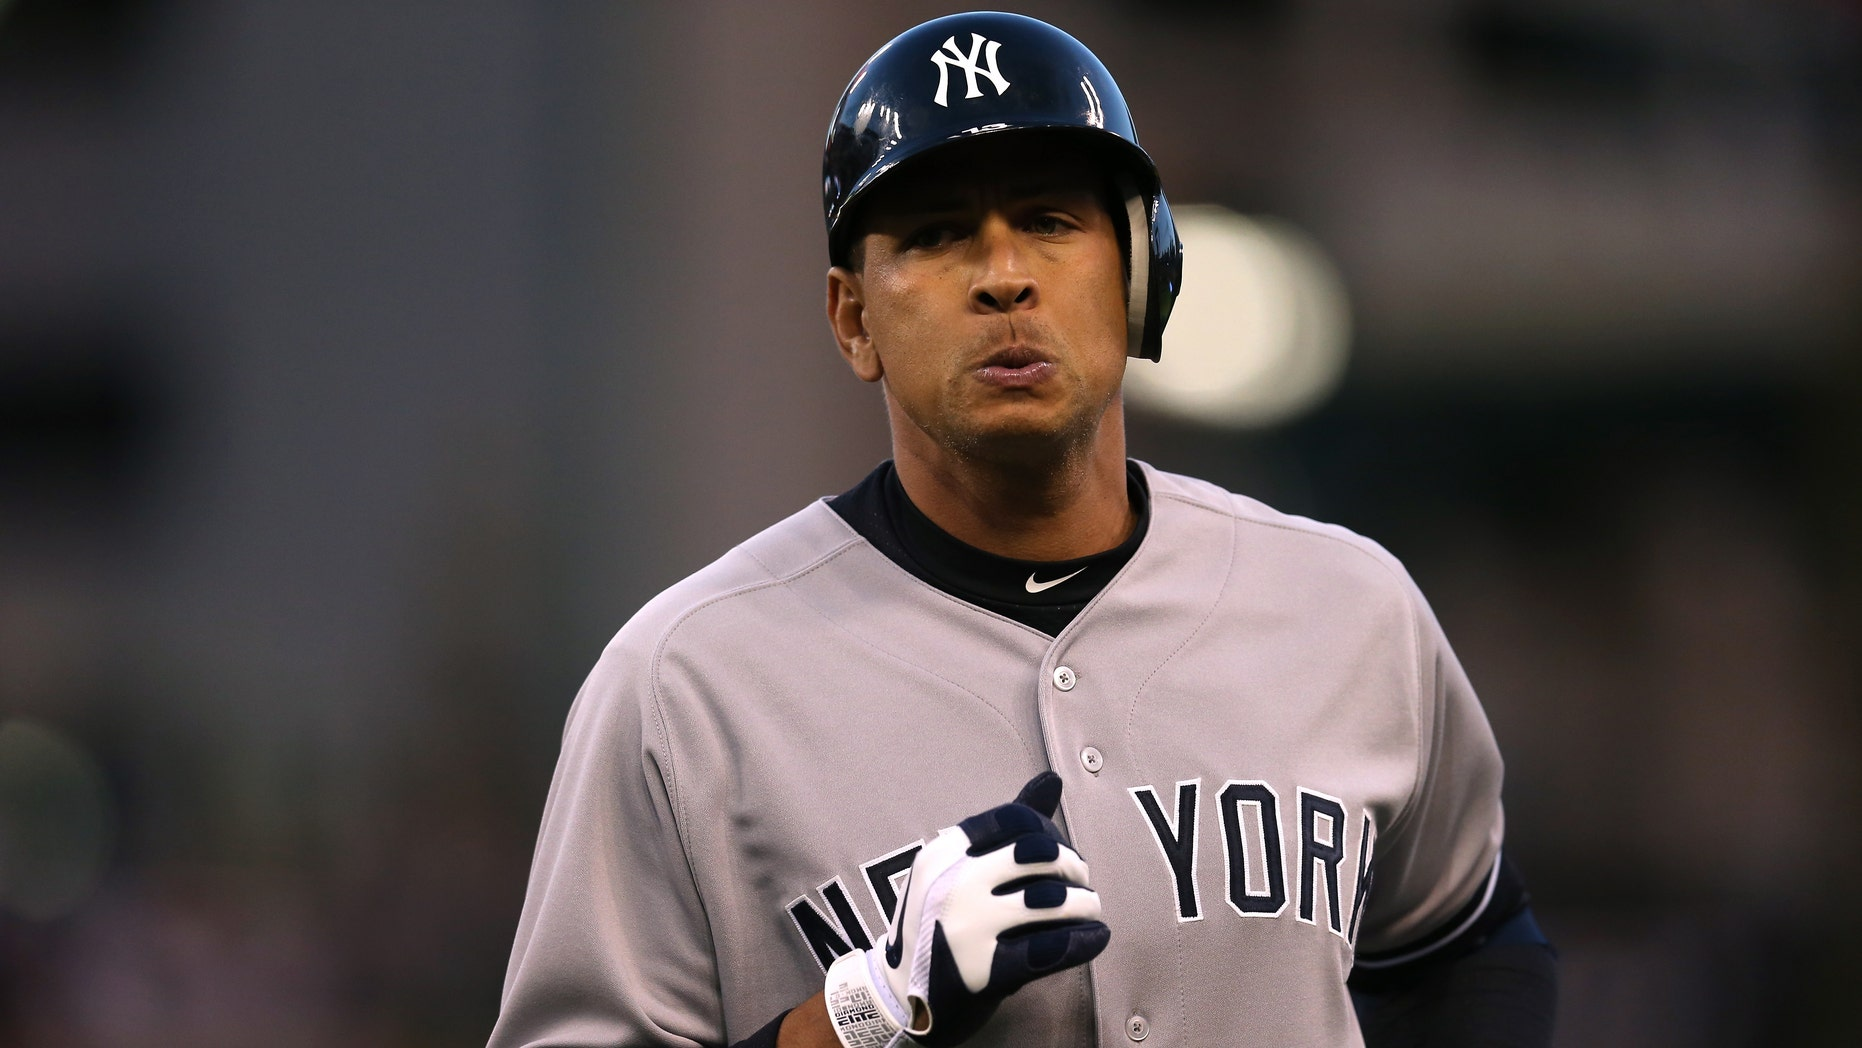 DETROIT, MI - OCTOBER 18:  Alex Rodriguez #13 of the New York Yankees reacts as he walsk back towards the dugout after he pinch hit and flied out in the top of the sixth inning against the Detroit Tigers during game four of the American League Championship Series at Comerica Park on October 18, 2012 in Detroit, Michigan.  (Photo by Jonathan Daniel/Getty Images)